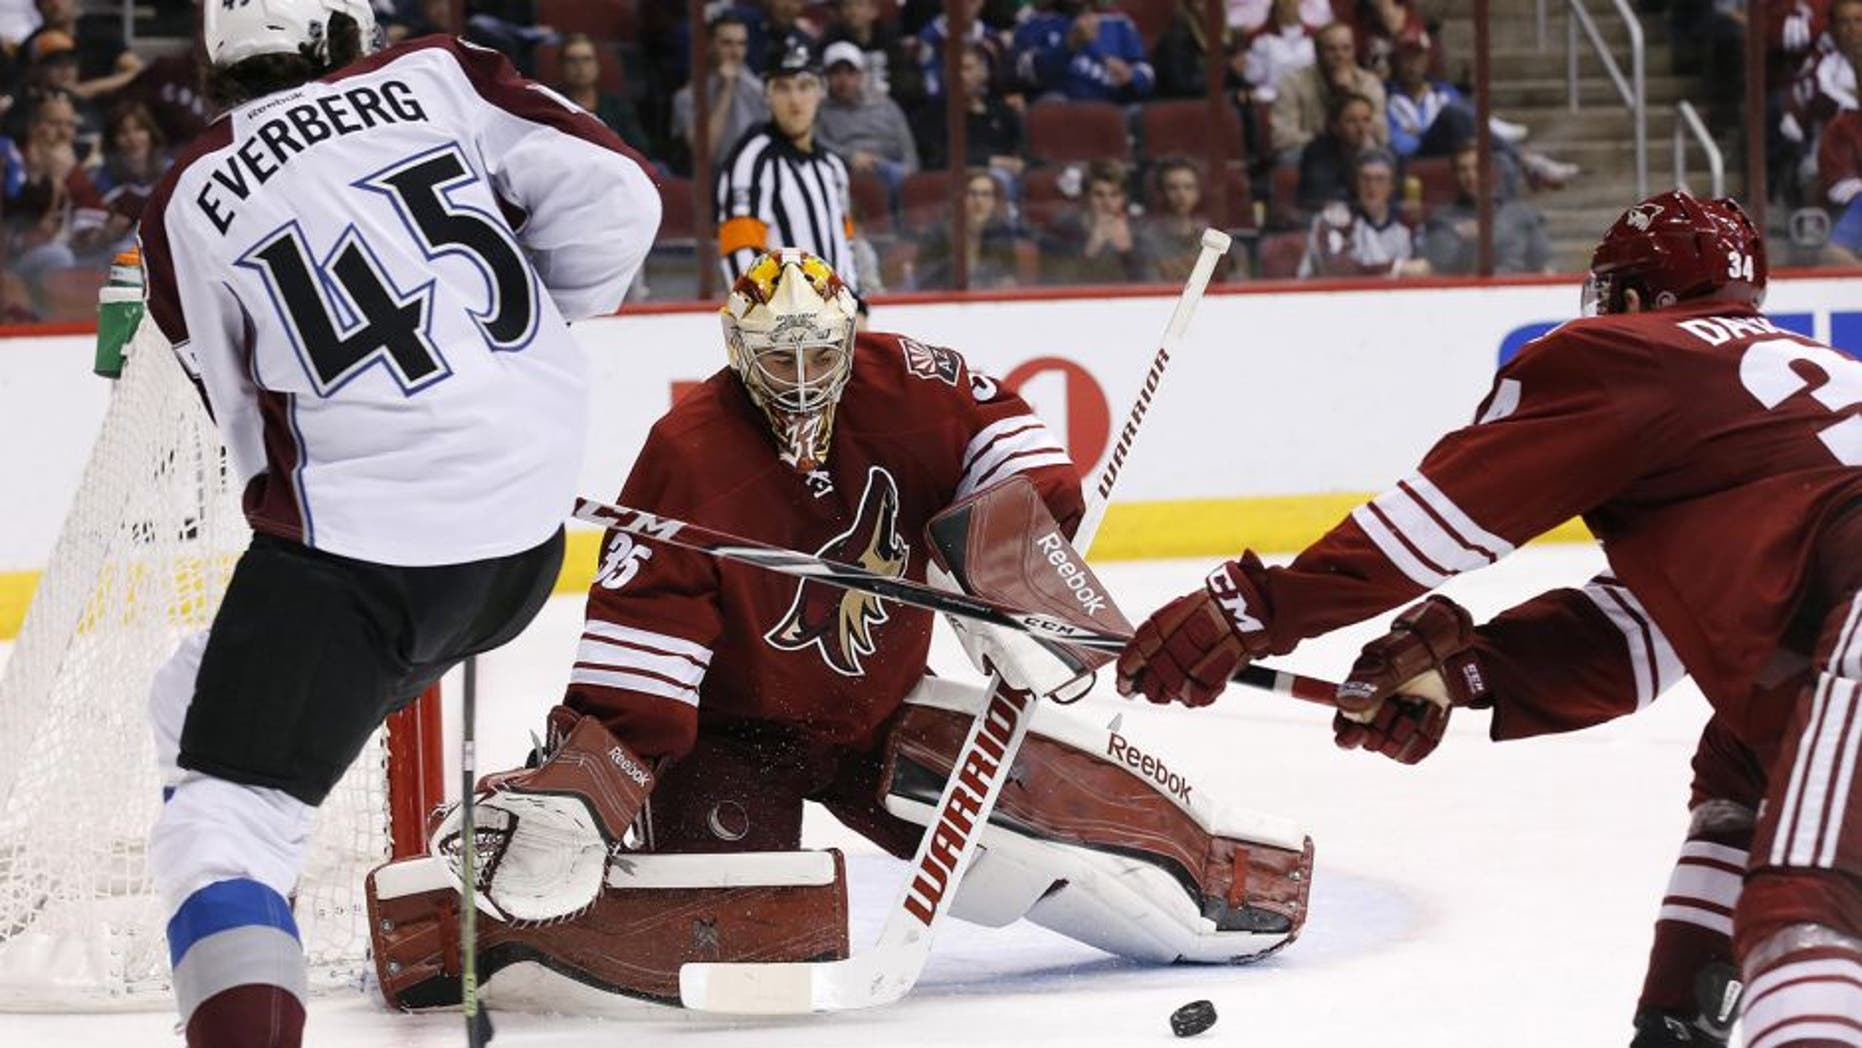 Colorado Avalanche's Dennis Everberg (45), of Sweden, passes the puck past Arizona Coyotes' Louis Domingue (35) as Coyotes' Klas Dahlbeck (34), of Sweden, during the third period of an NHL hockey game Thursday, March 19, 2015, in Glendale, Ariz. The Avalanche defeated the Coyotes 5-2. (AP Photo/Ross D. Franklin)